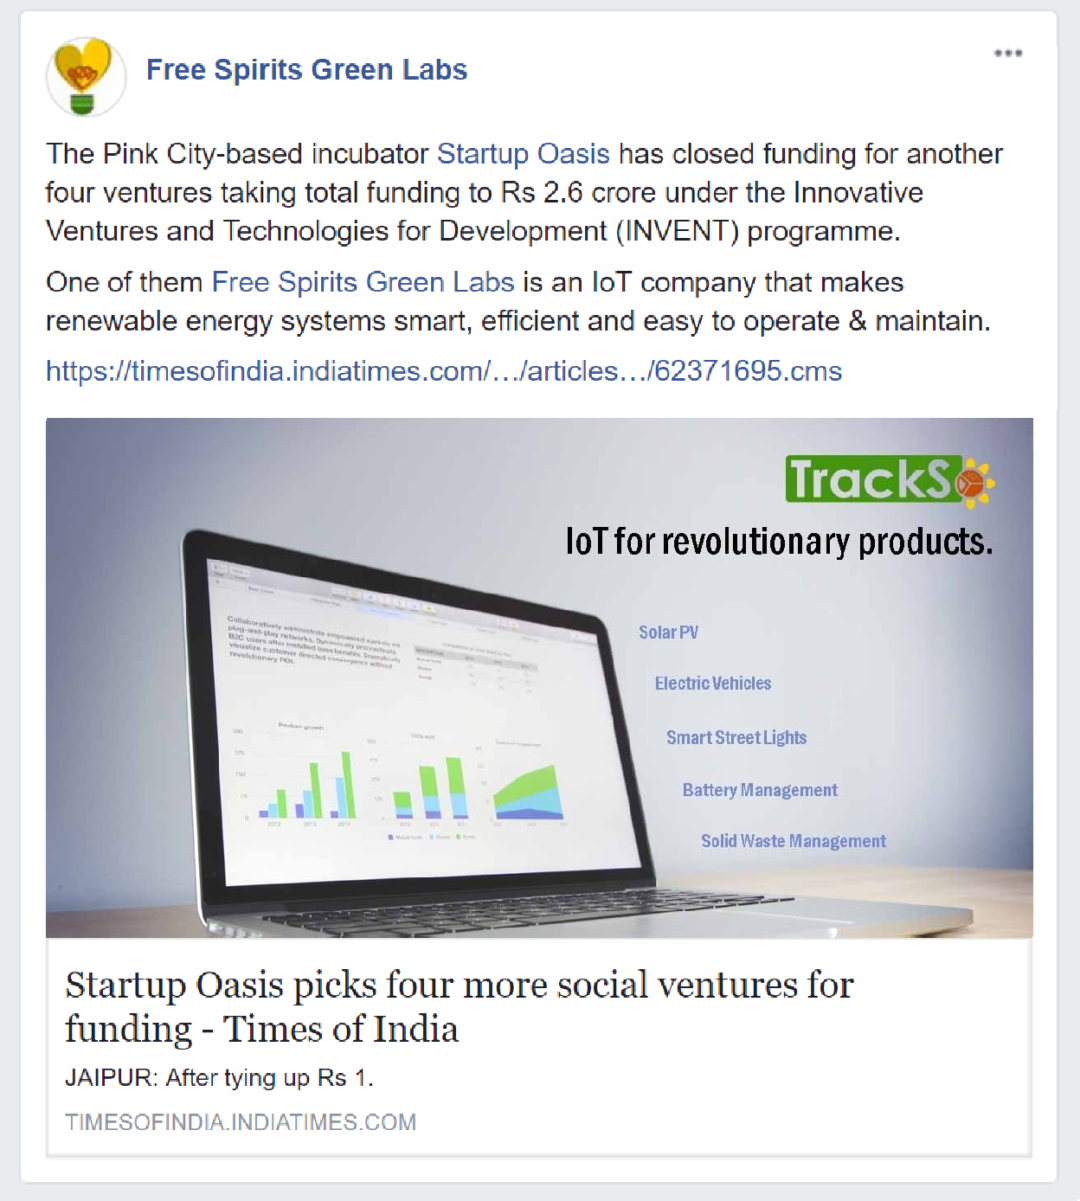 Free Spirits Green Labs closes funding round with Startup Oasis